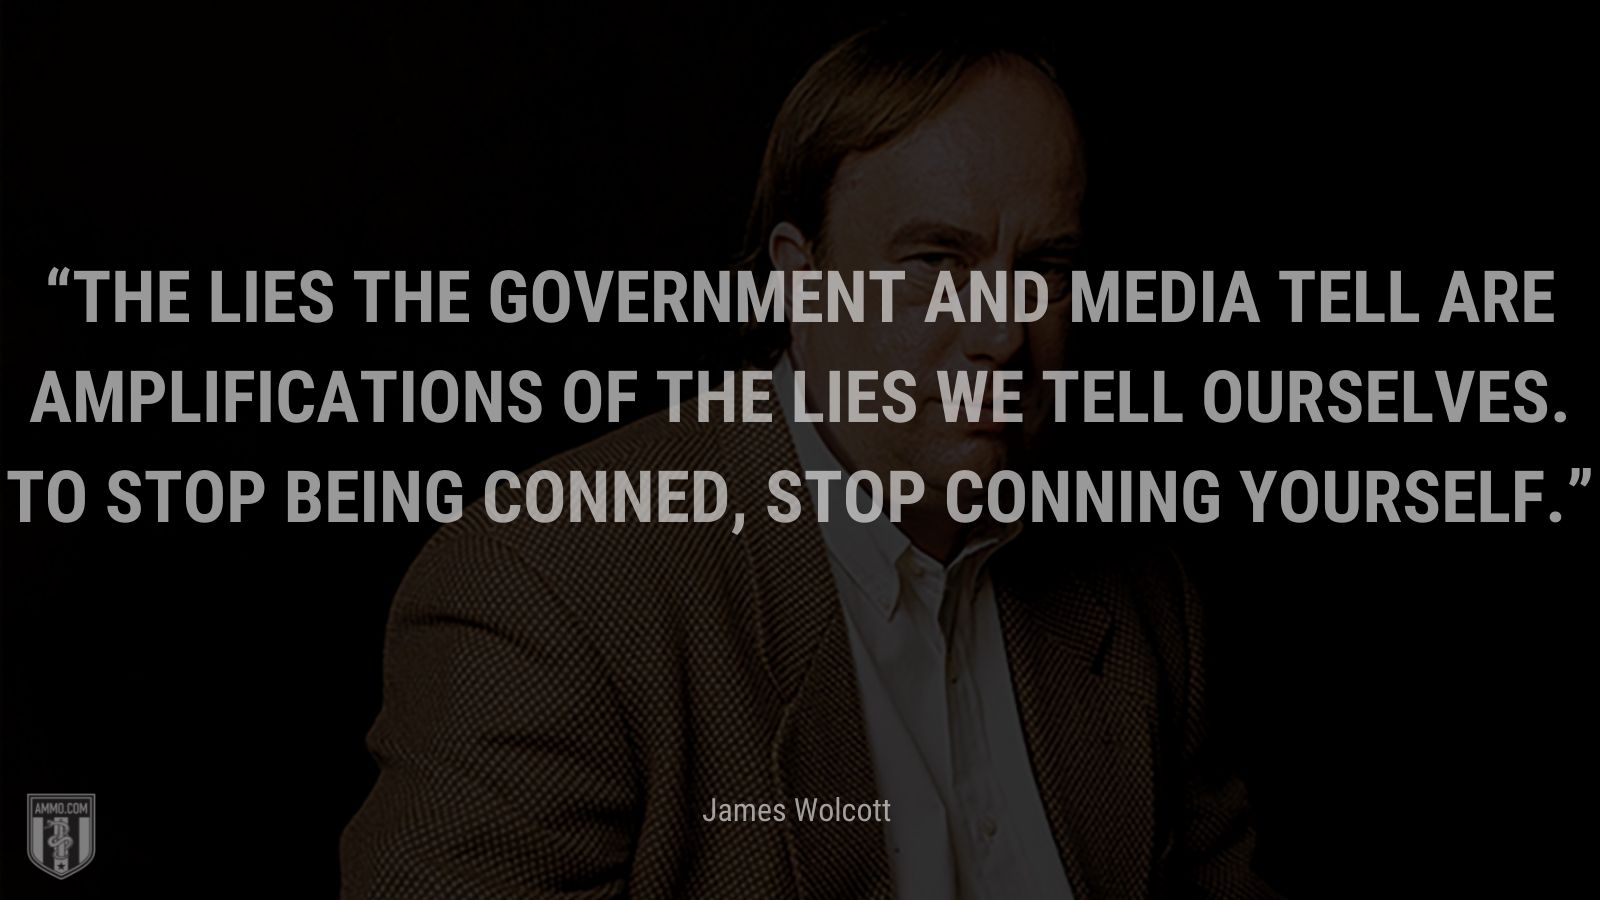 """""""The lies the government and media tell are amplifications of the lies we tell ourselves. To stop being conned, stop conning yourself."""" - James Wolcott"""